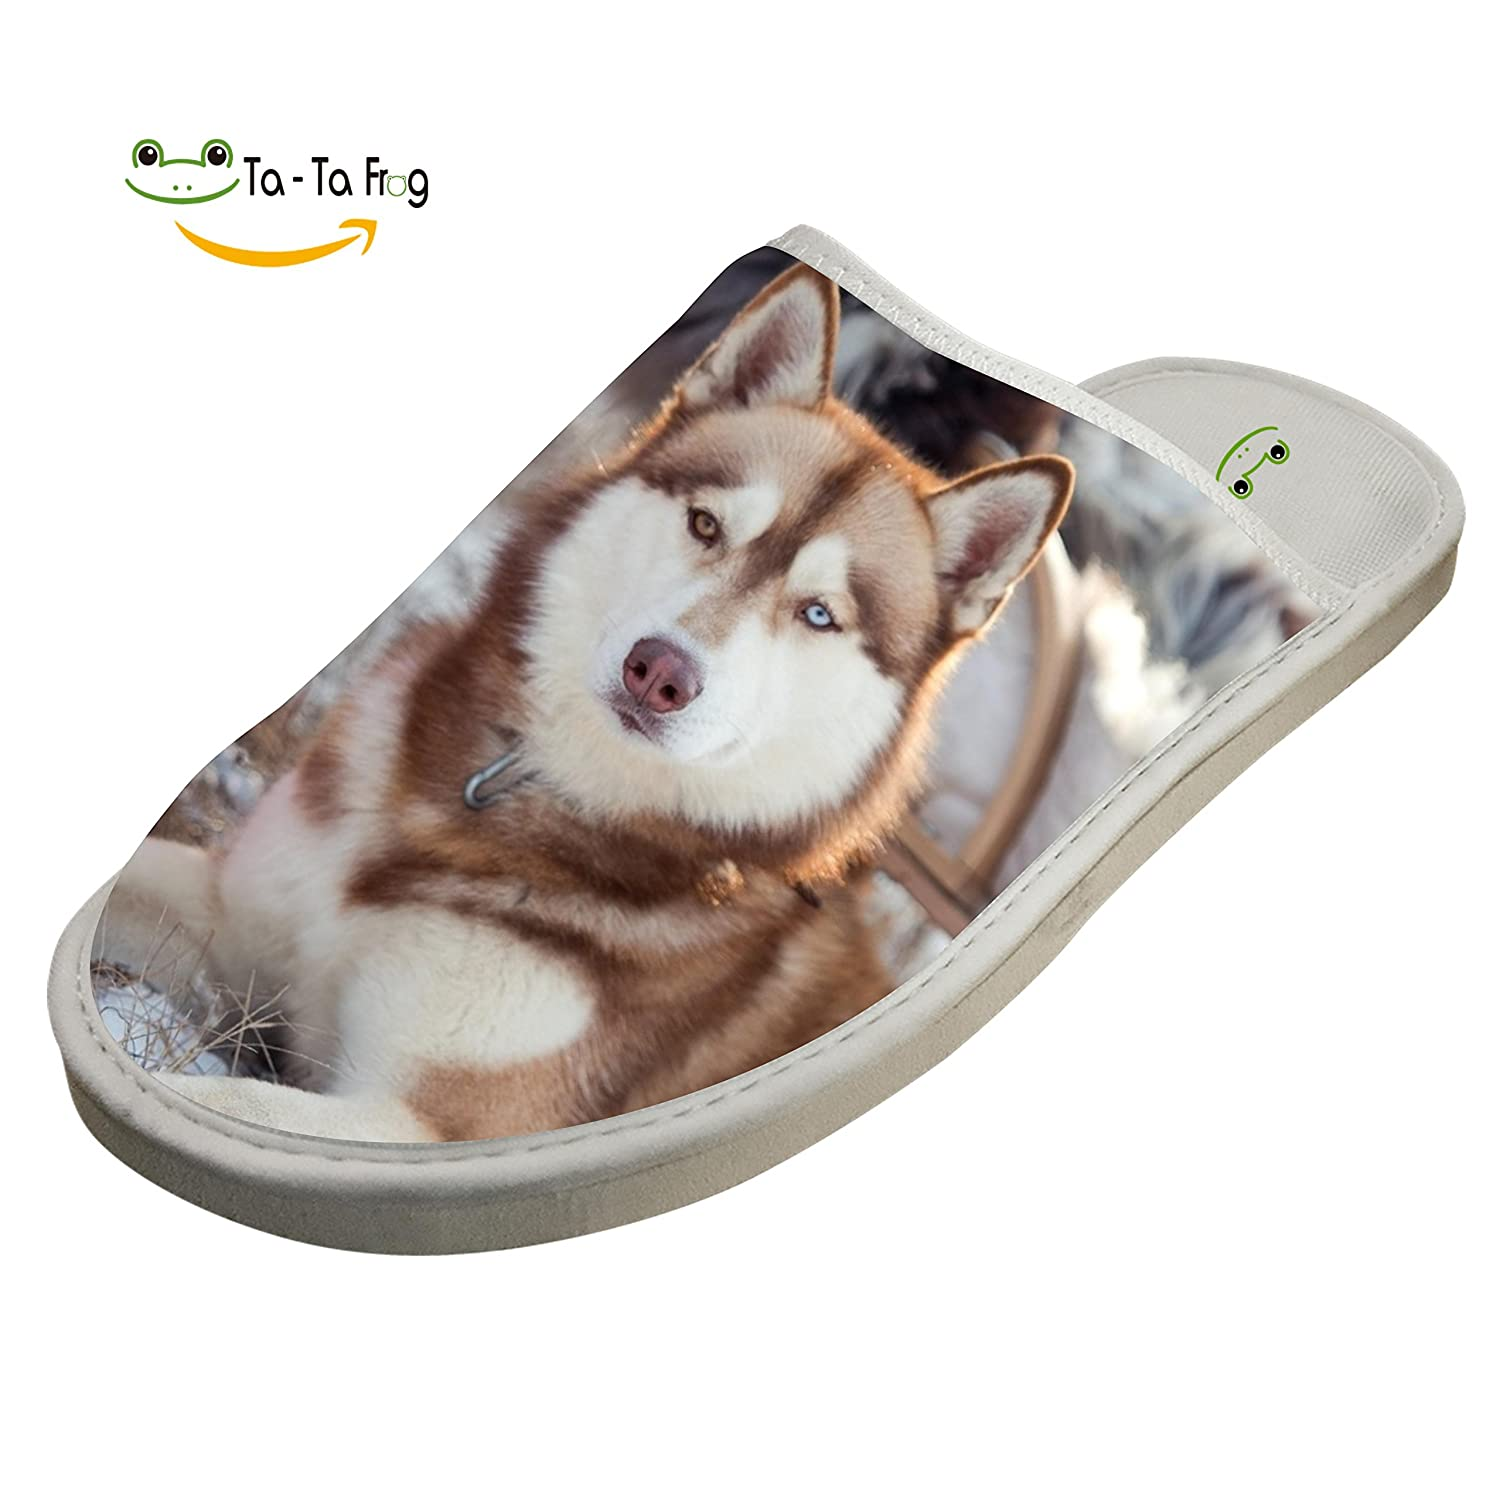 b75ef5f1f Amazon.com  Loyal Husky Dog Puppy Slippers Home Slip-On Sandals Flat  Sleeppers Shoes Custom Flip-Flops Adults 15  Clothing